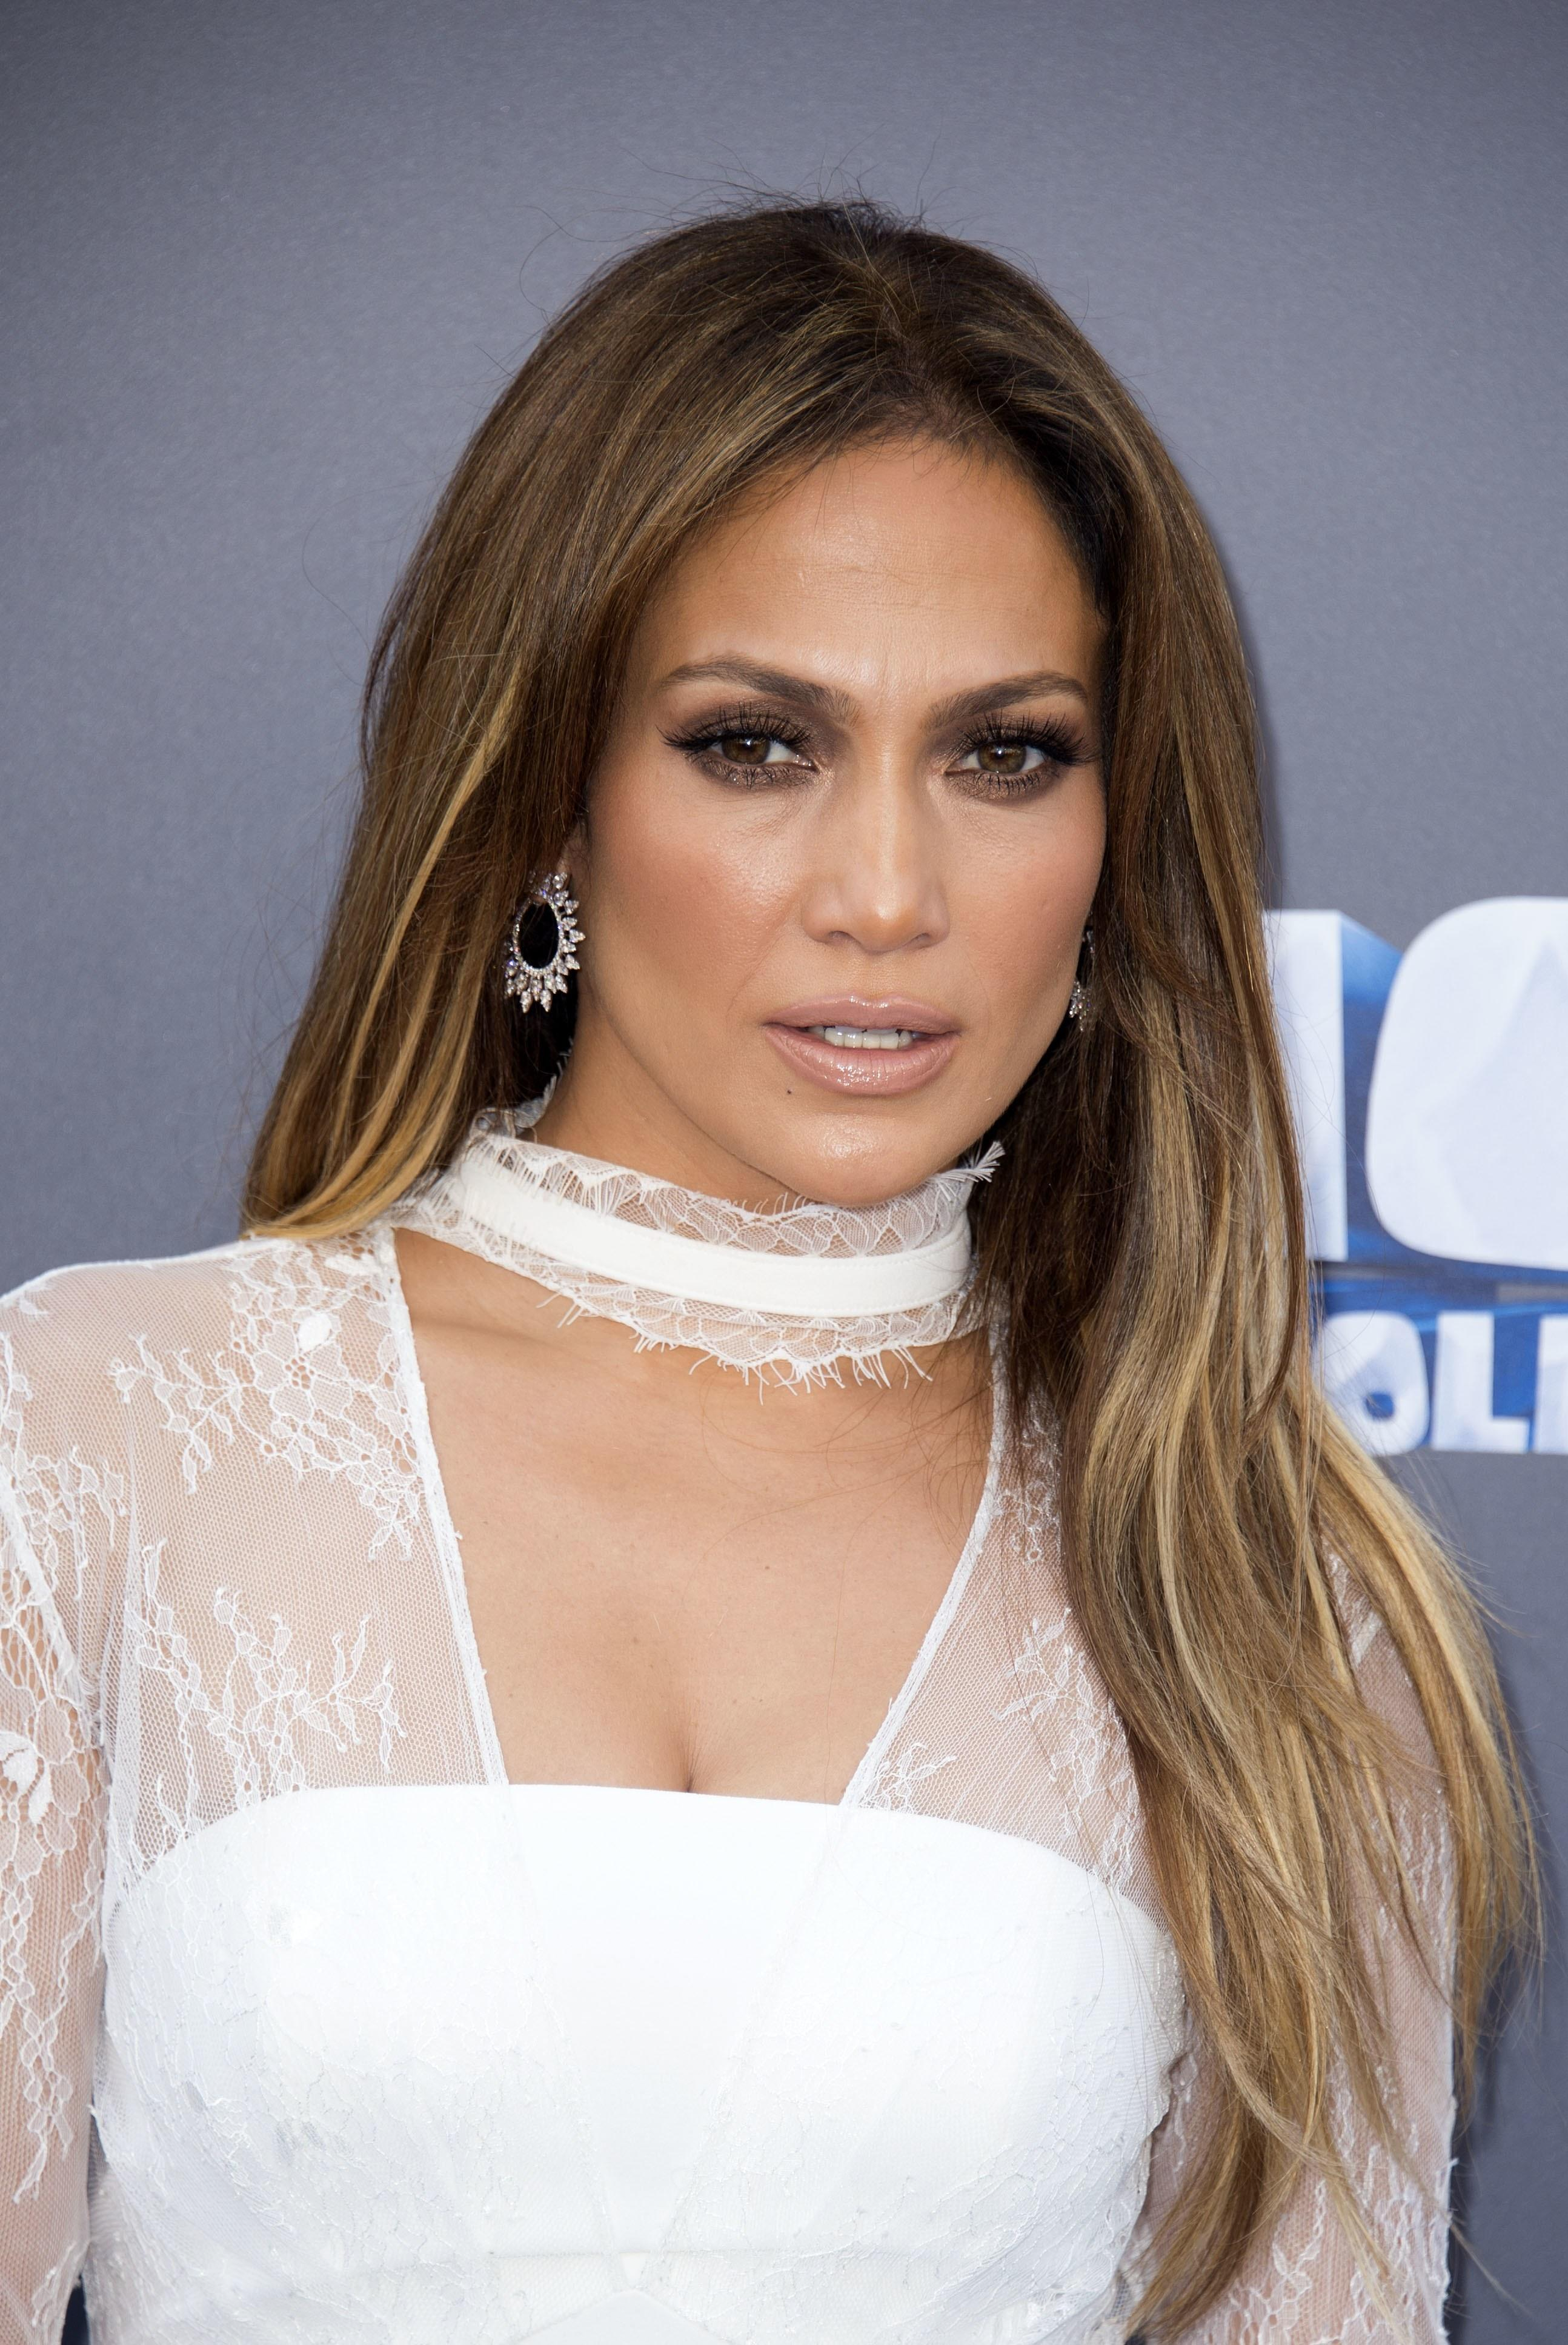 The Best Jennifer Lopez's Braid Is Giving Us Jenny From The Block Pictures